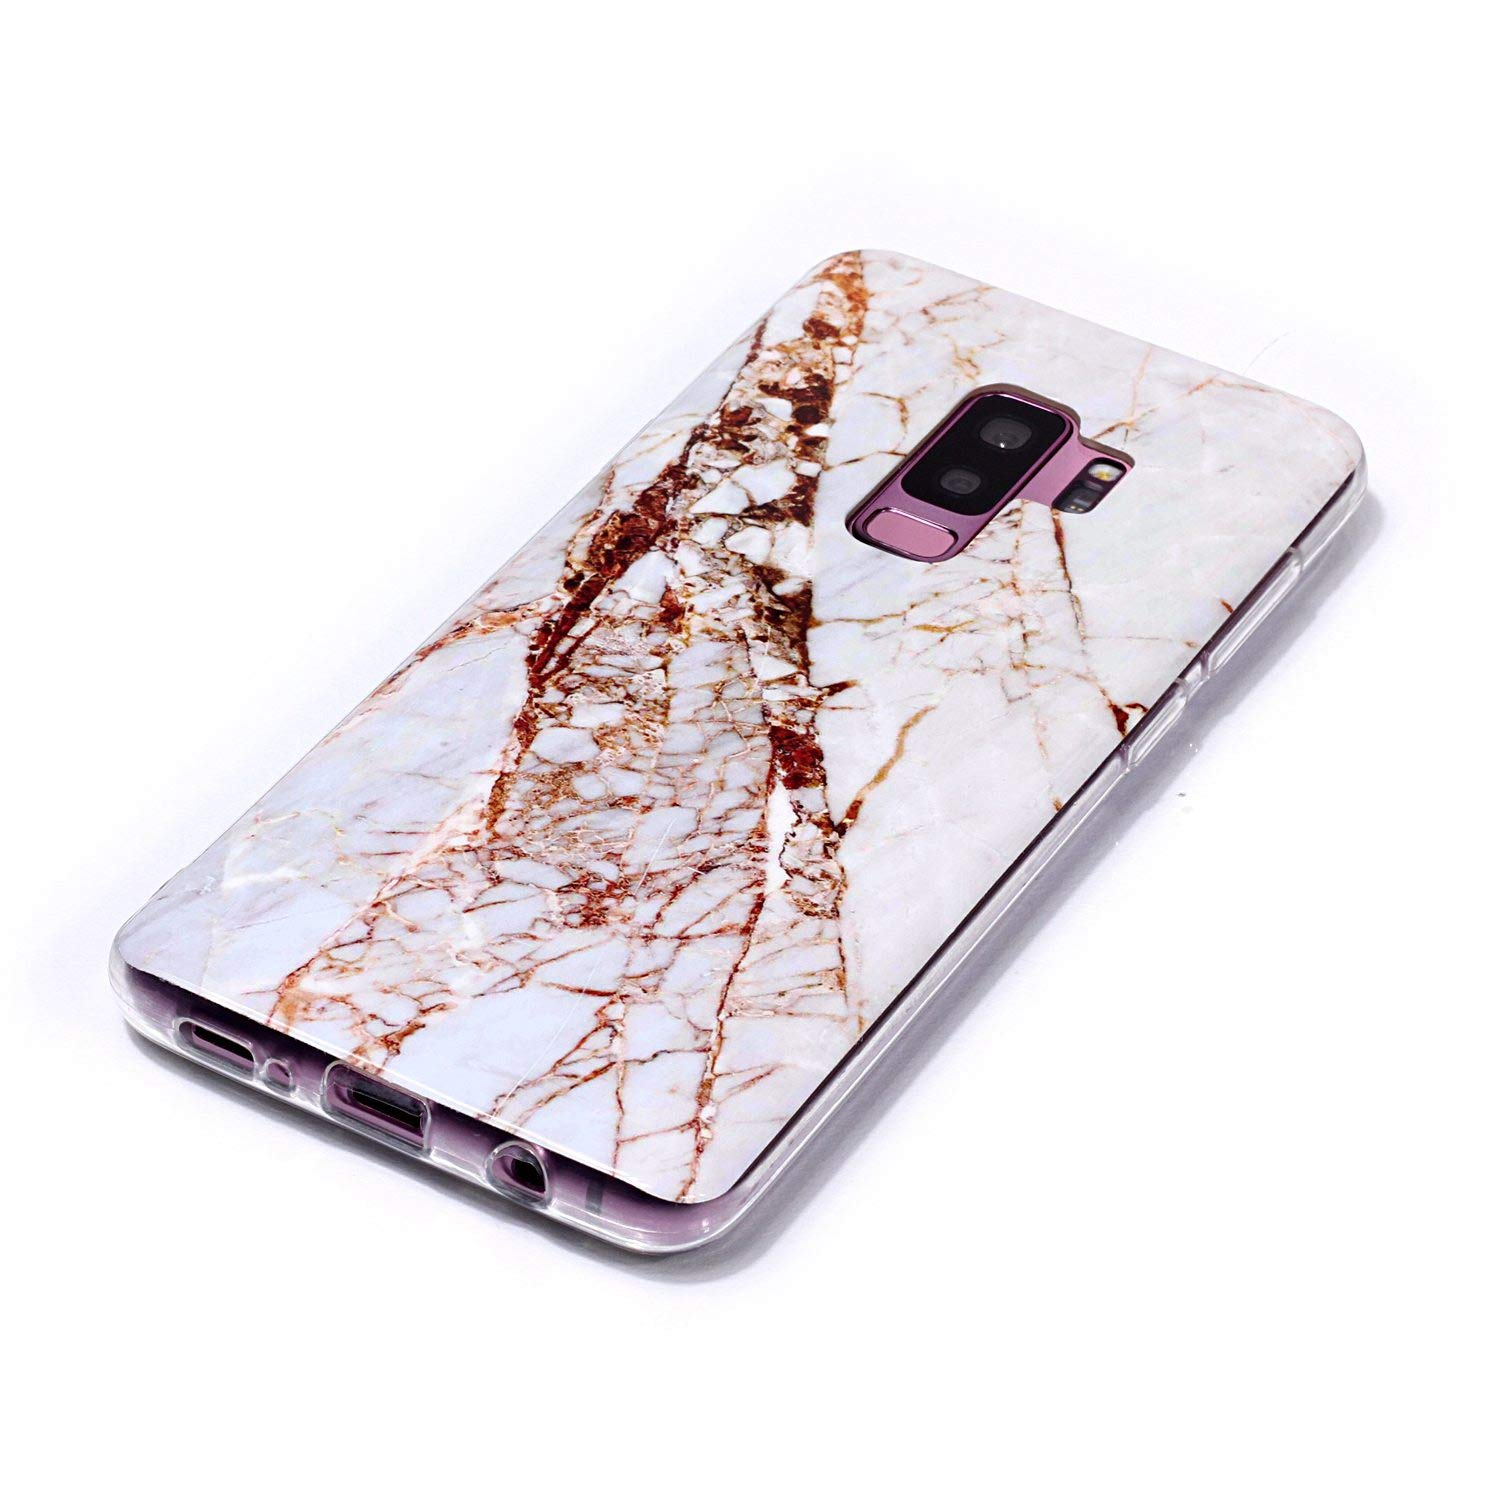 for Samsung Galaxy S9 Plus Marble Case with Screen Protector,Unique Pattern Design Skin Ultra Thin Slim Fit Soft Gel Silicone Case,QFFUN Shockproof Anti-Scratch Protective Back Cover - White by QFFUN (Image #3)